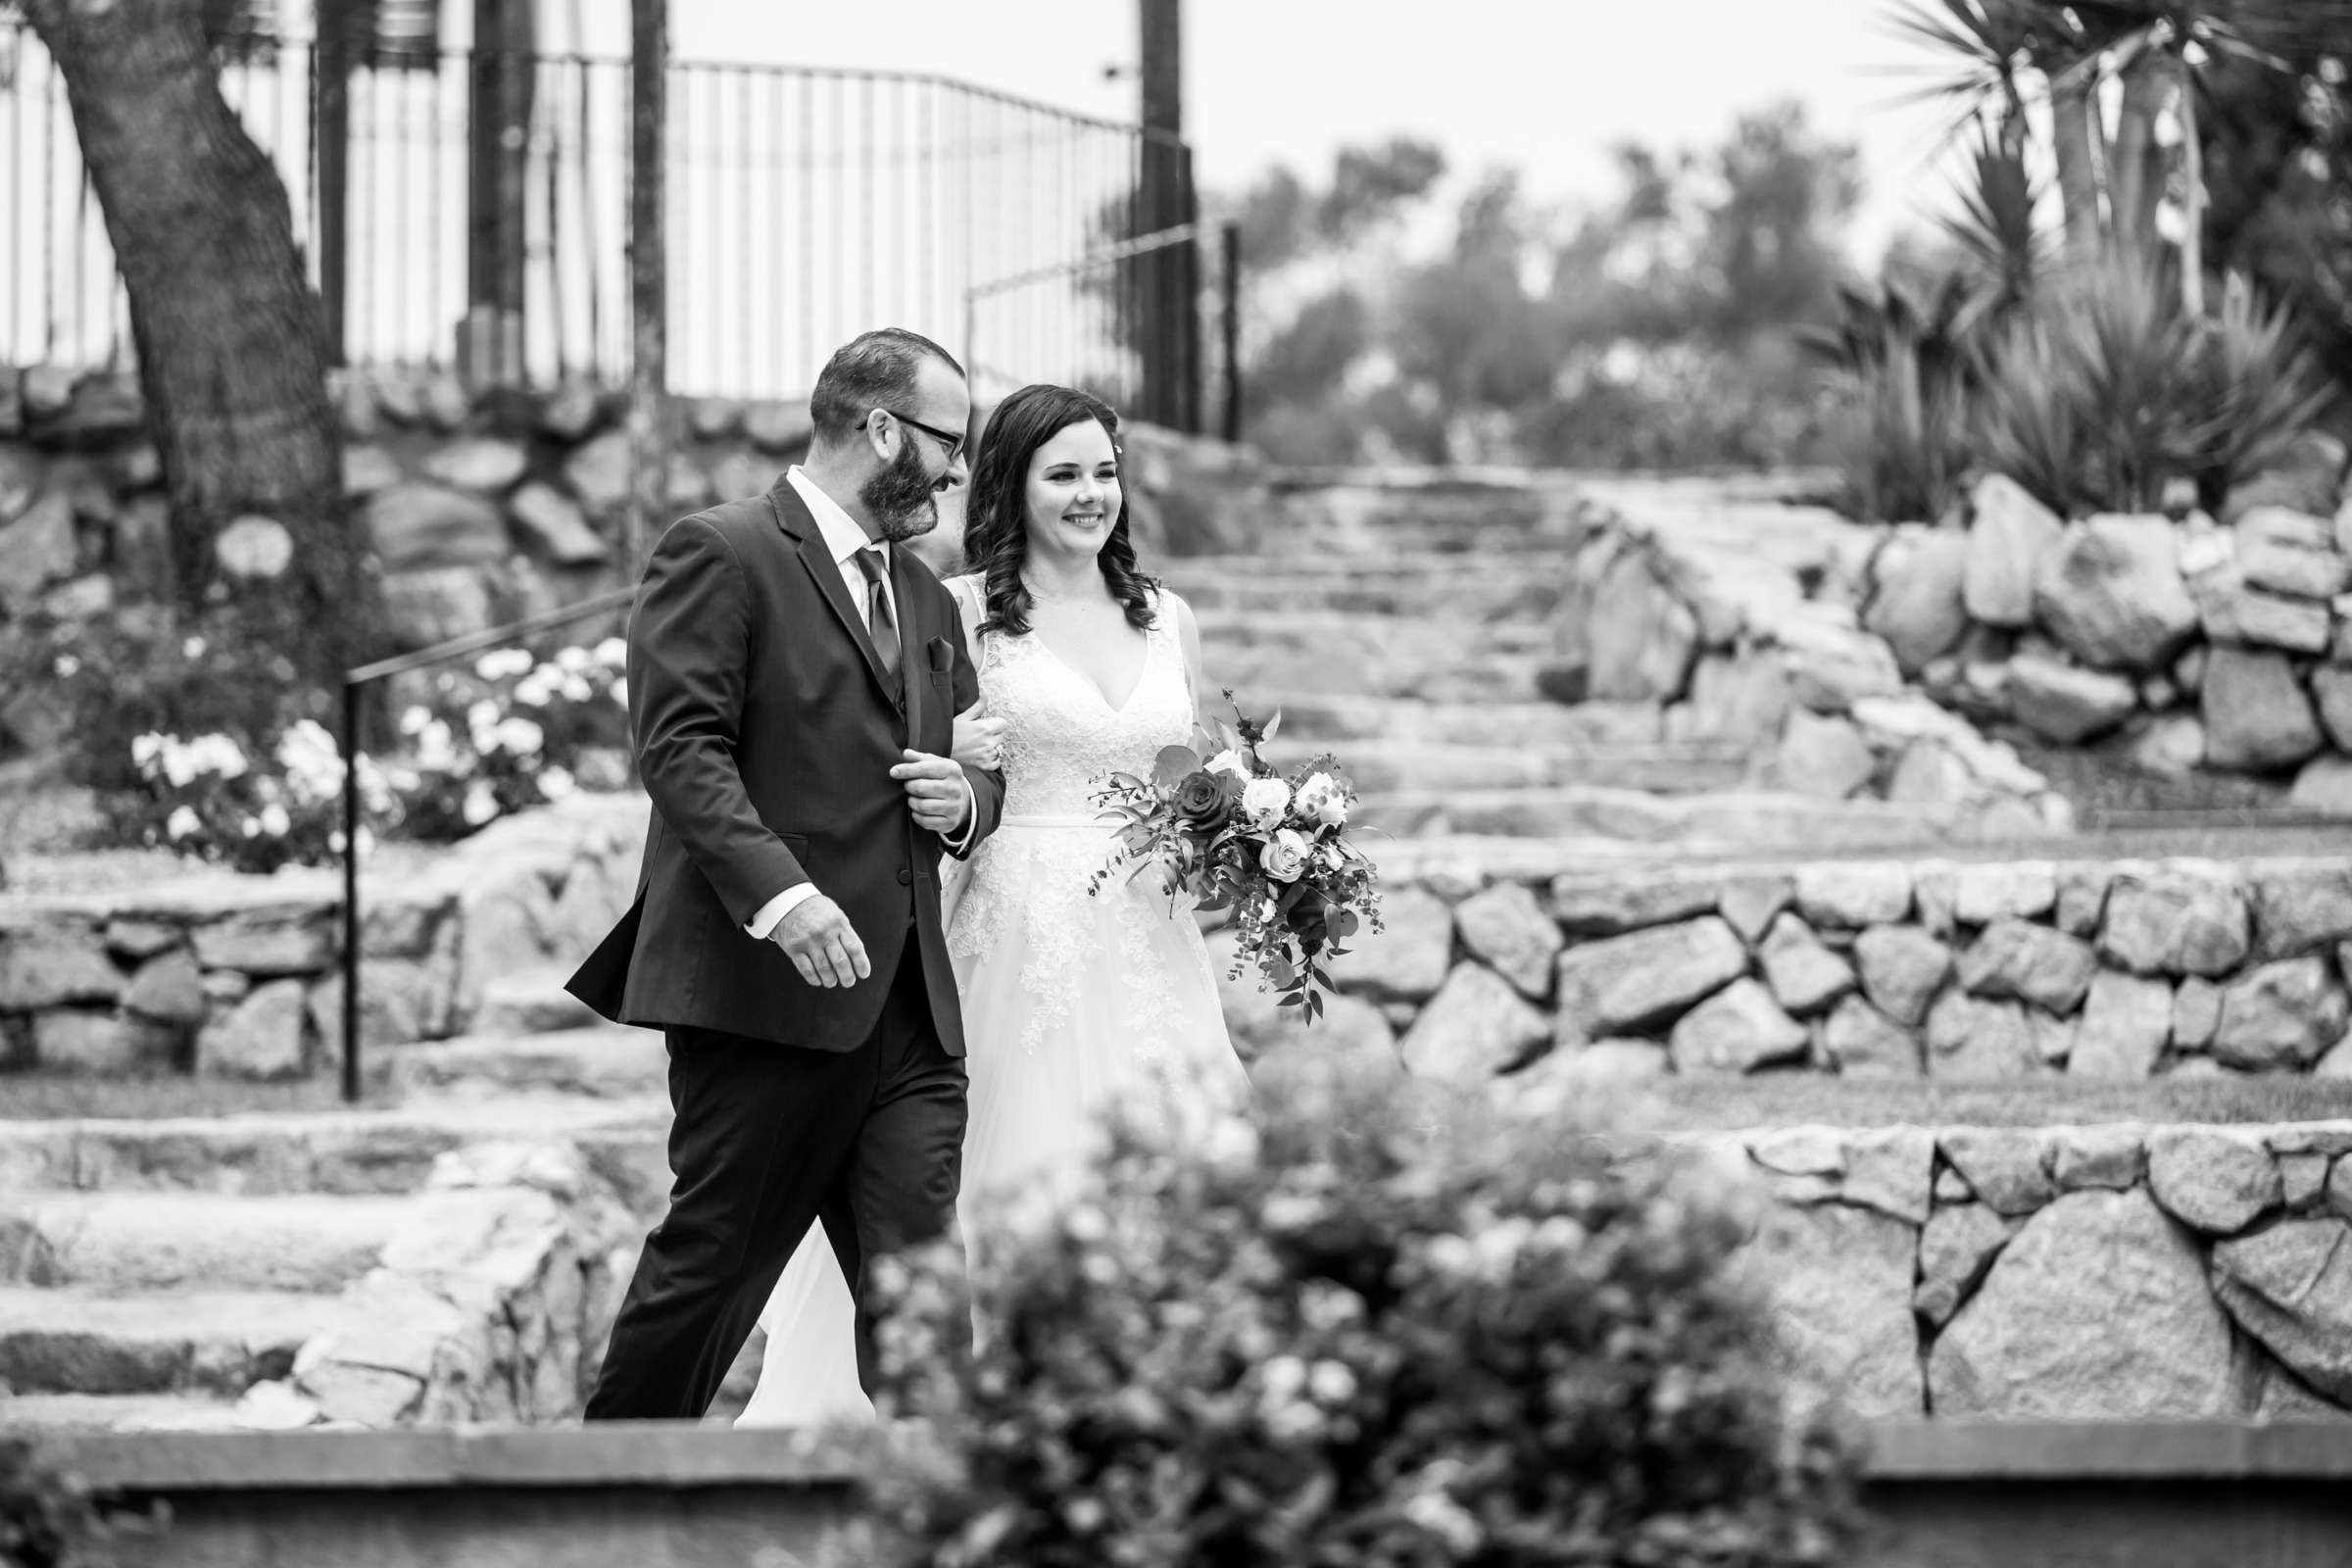 Mt Woodson Castle Wedding, Valerie and Ian Wedding Photo #57 by True Photography